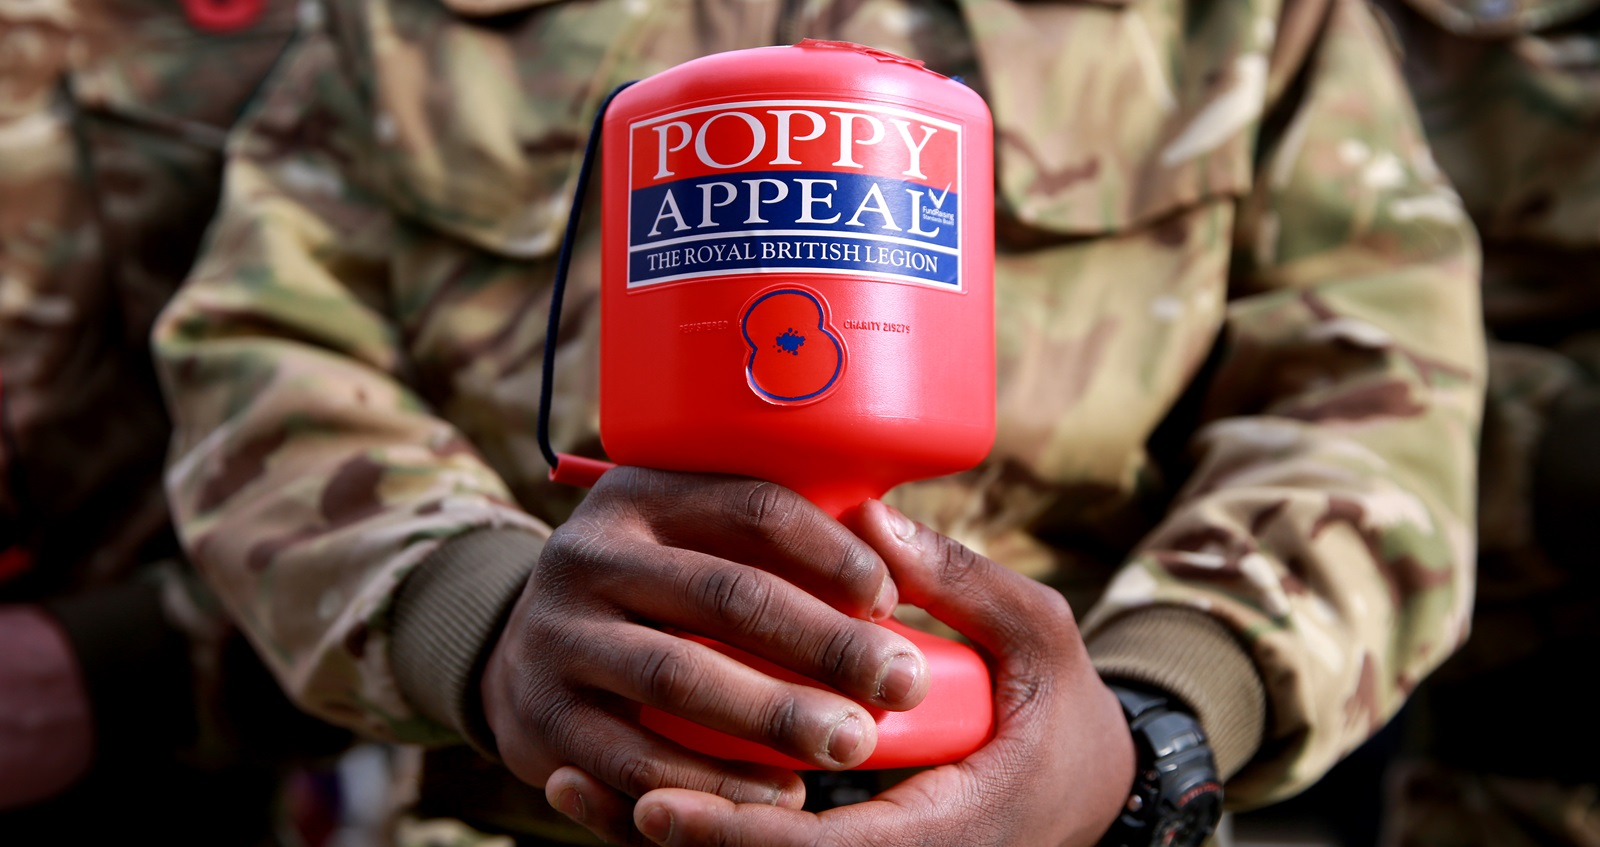 Royal British Legion Poppy Appeal collector in battledress holding red collection box